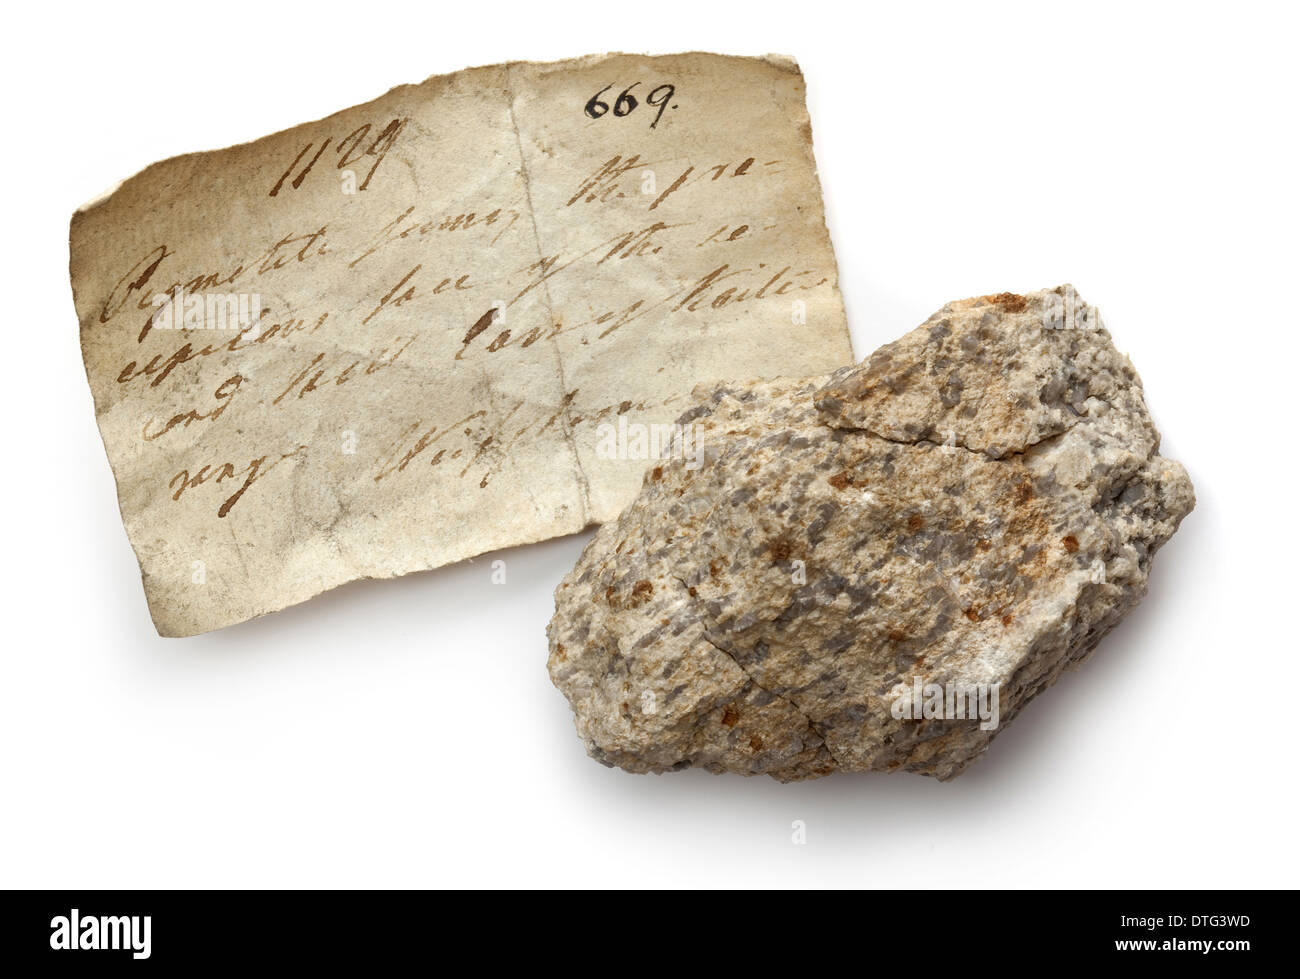 Granite - Stock Image